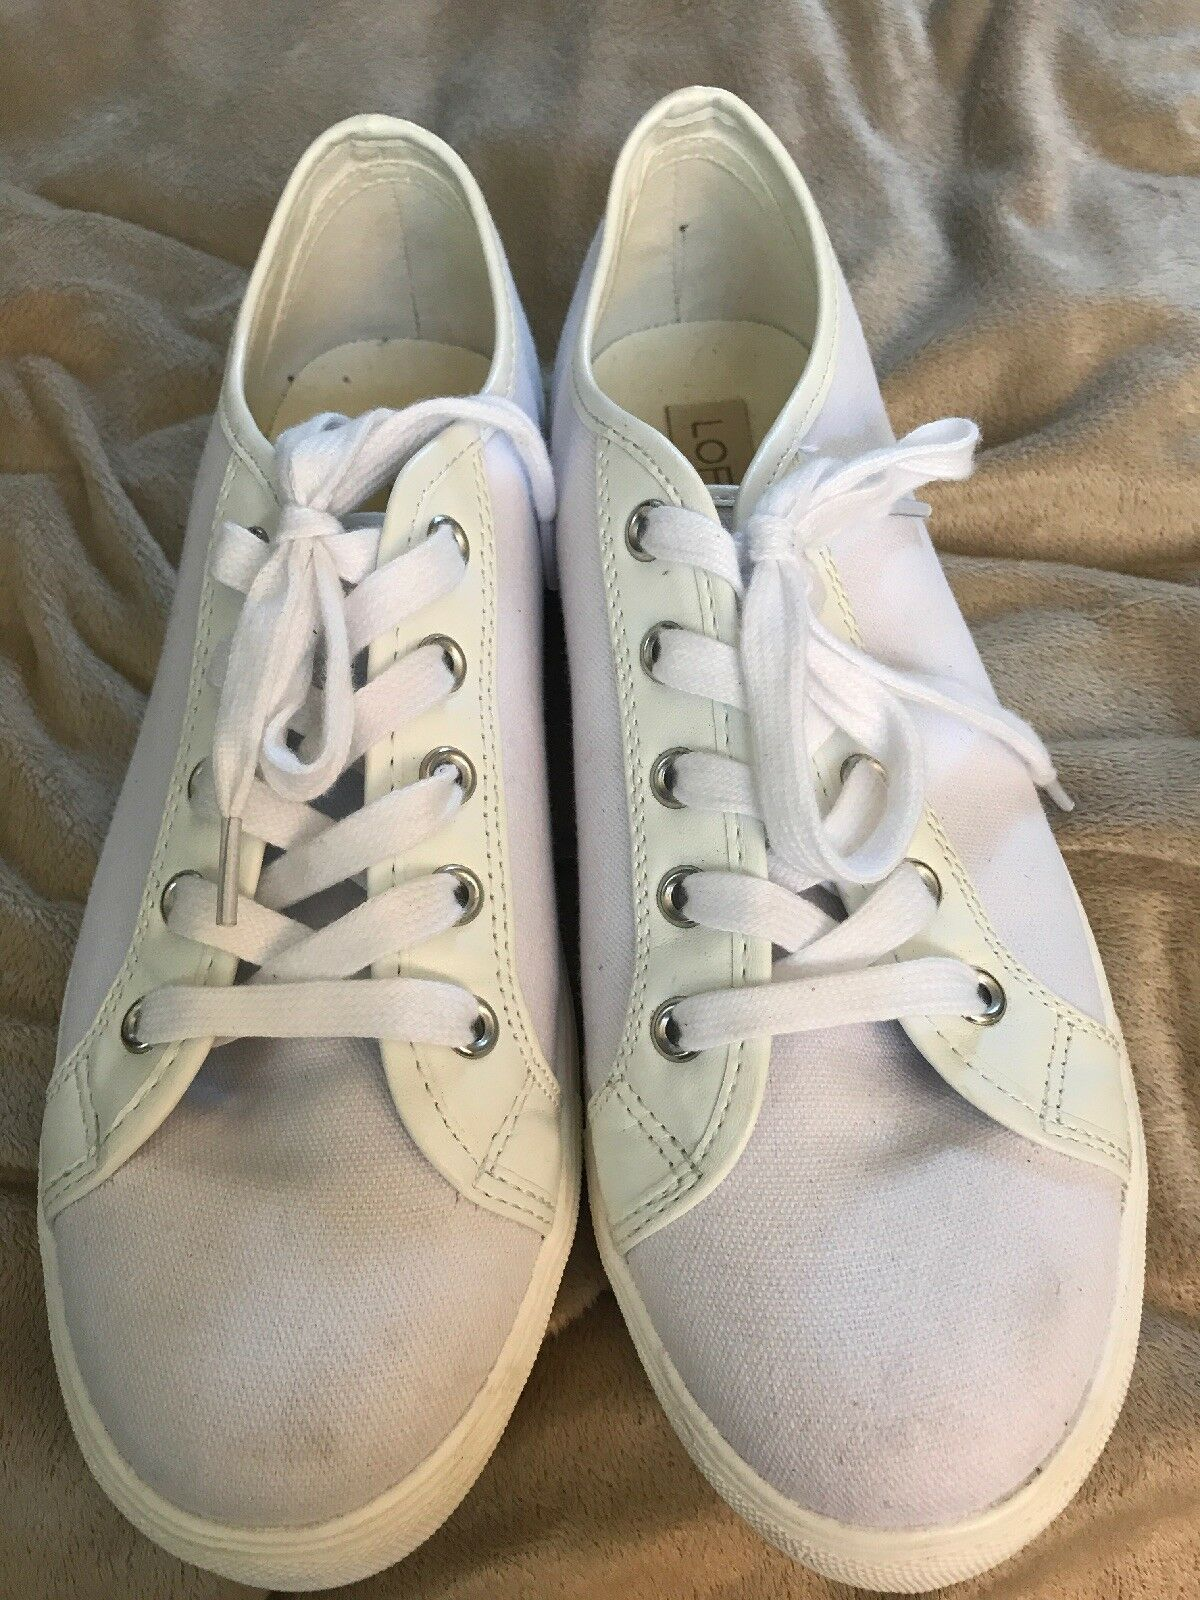 Man's/Woman's loft White Sneaker the of most convenient a variety of the Maintenance capability 6b61dd